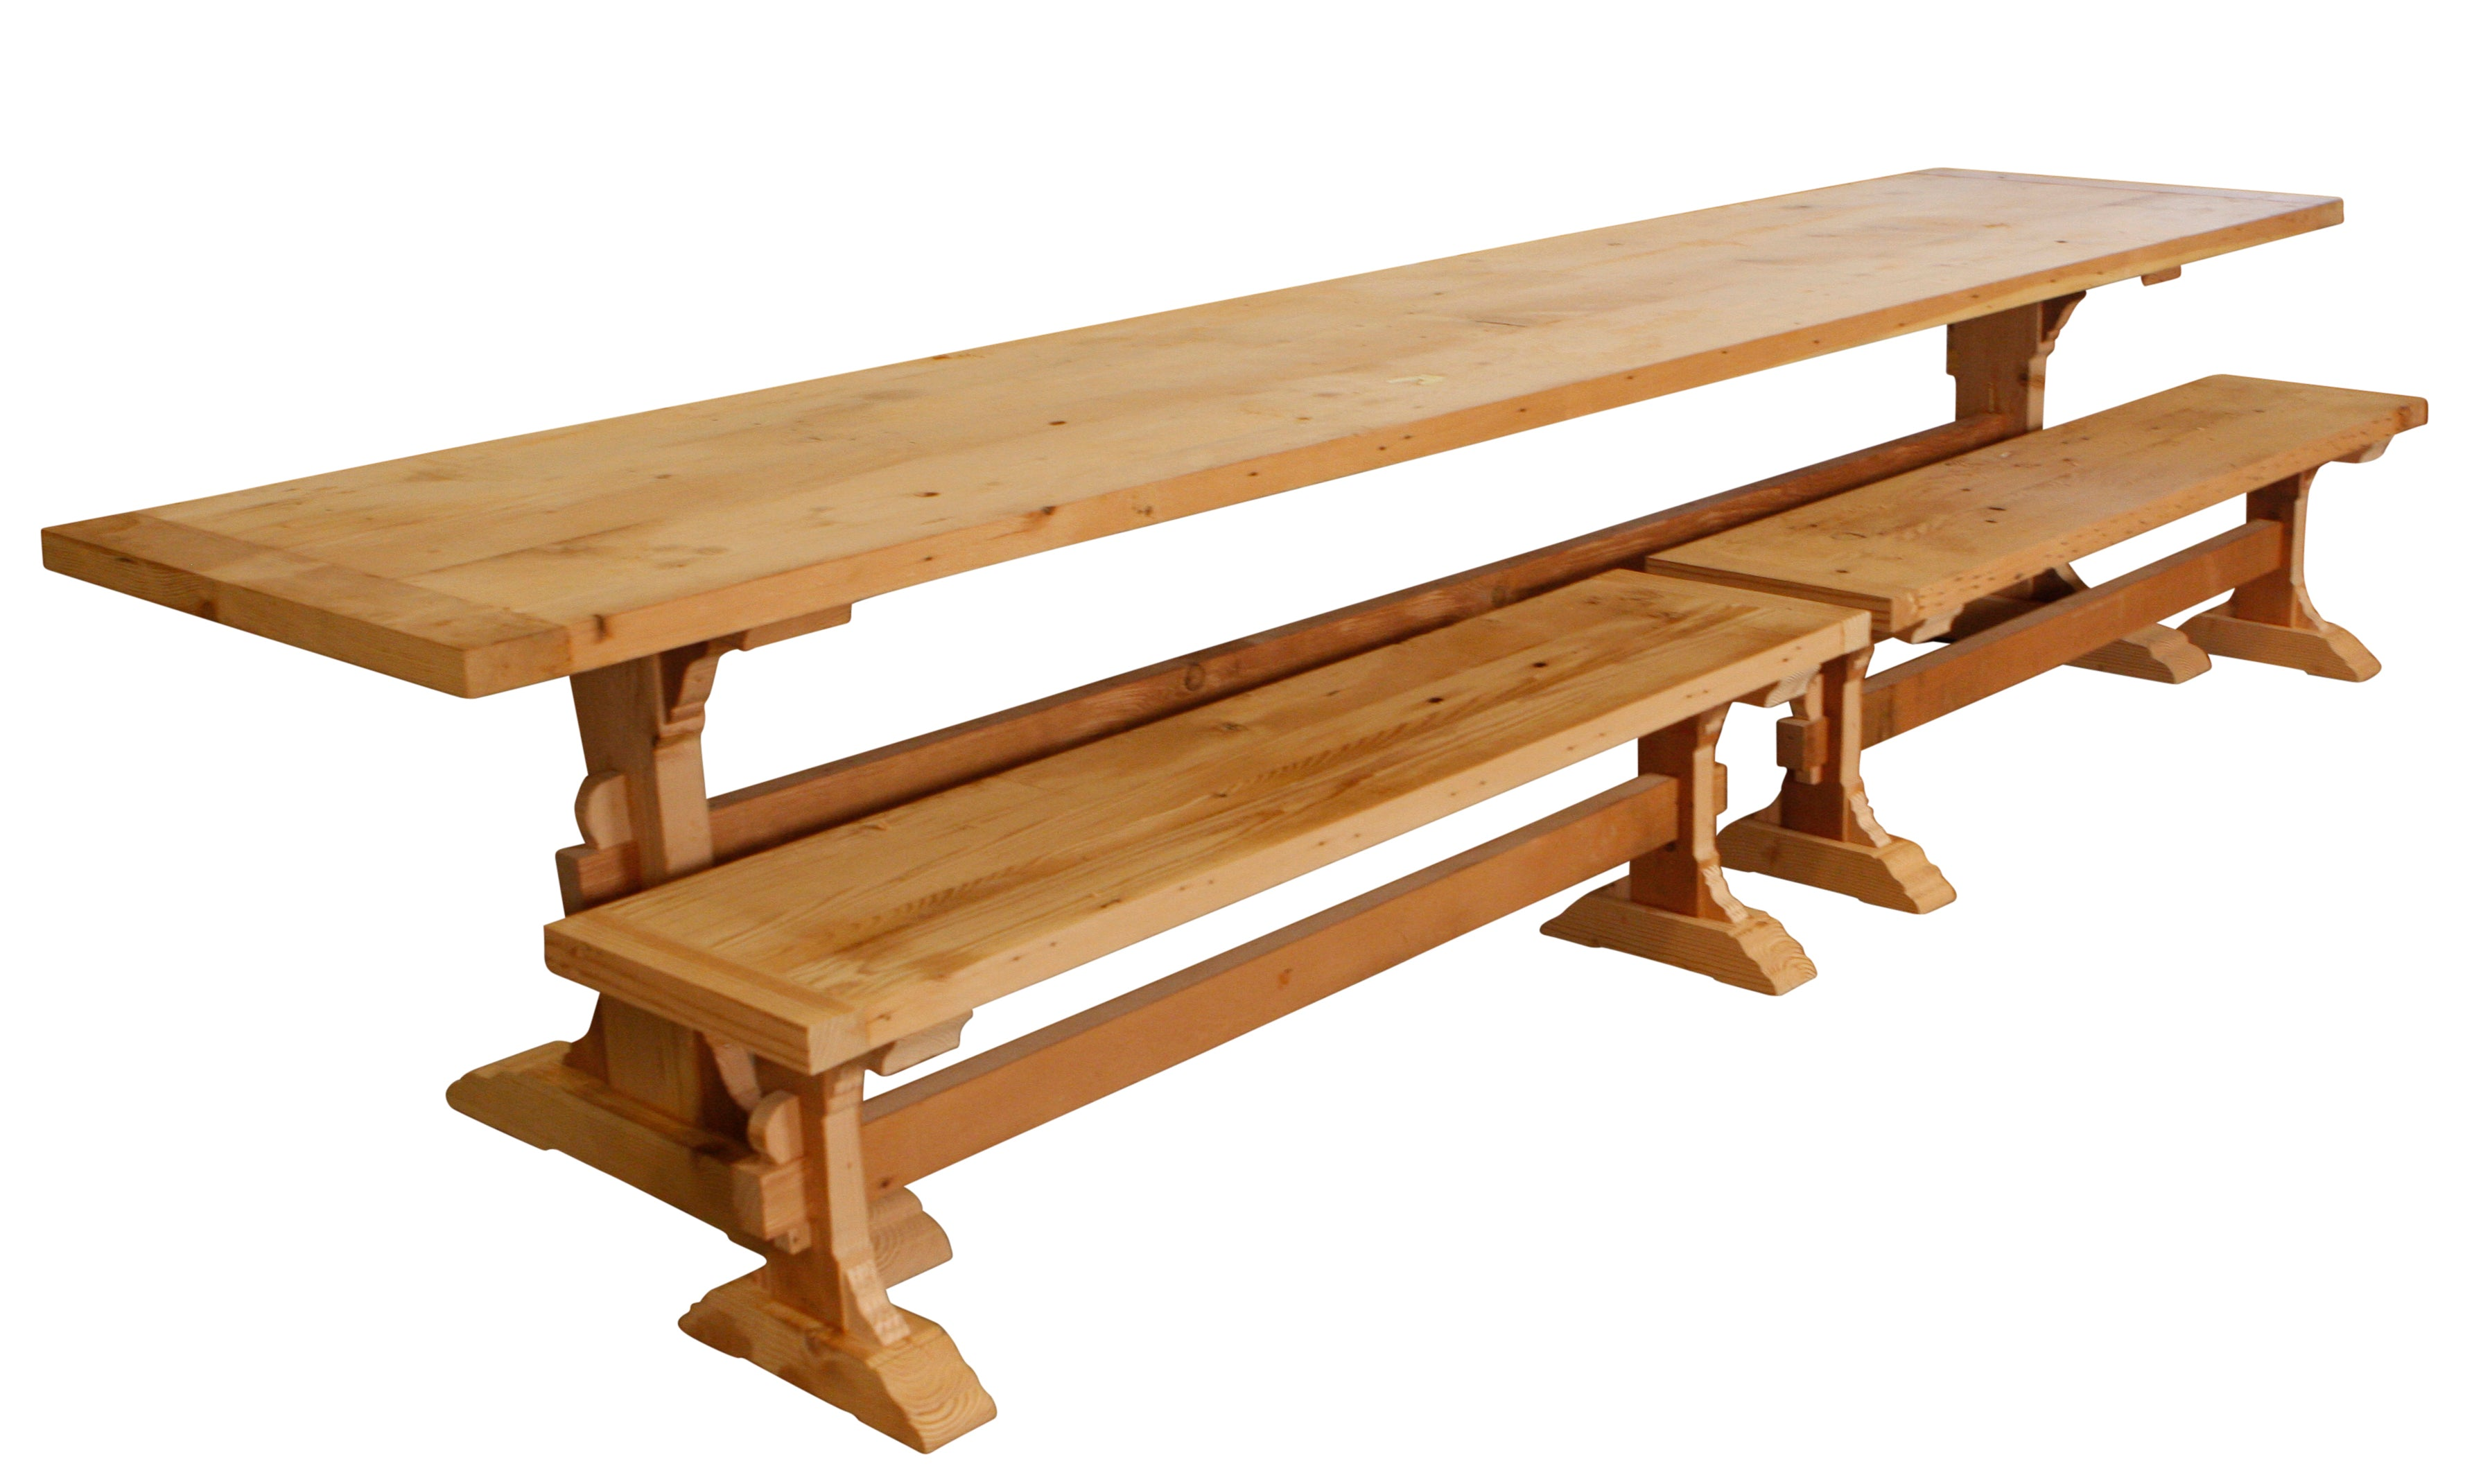 Beau Large Family Style Trestle Dining Table And Benches. Tap To Expand